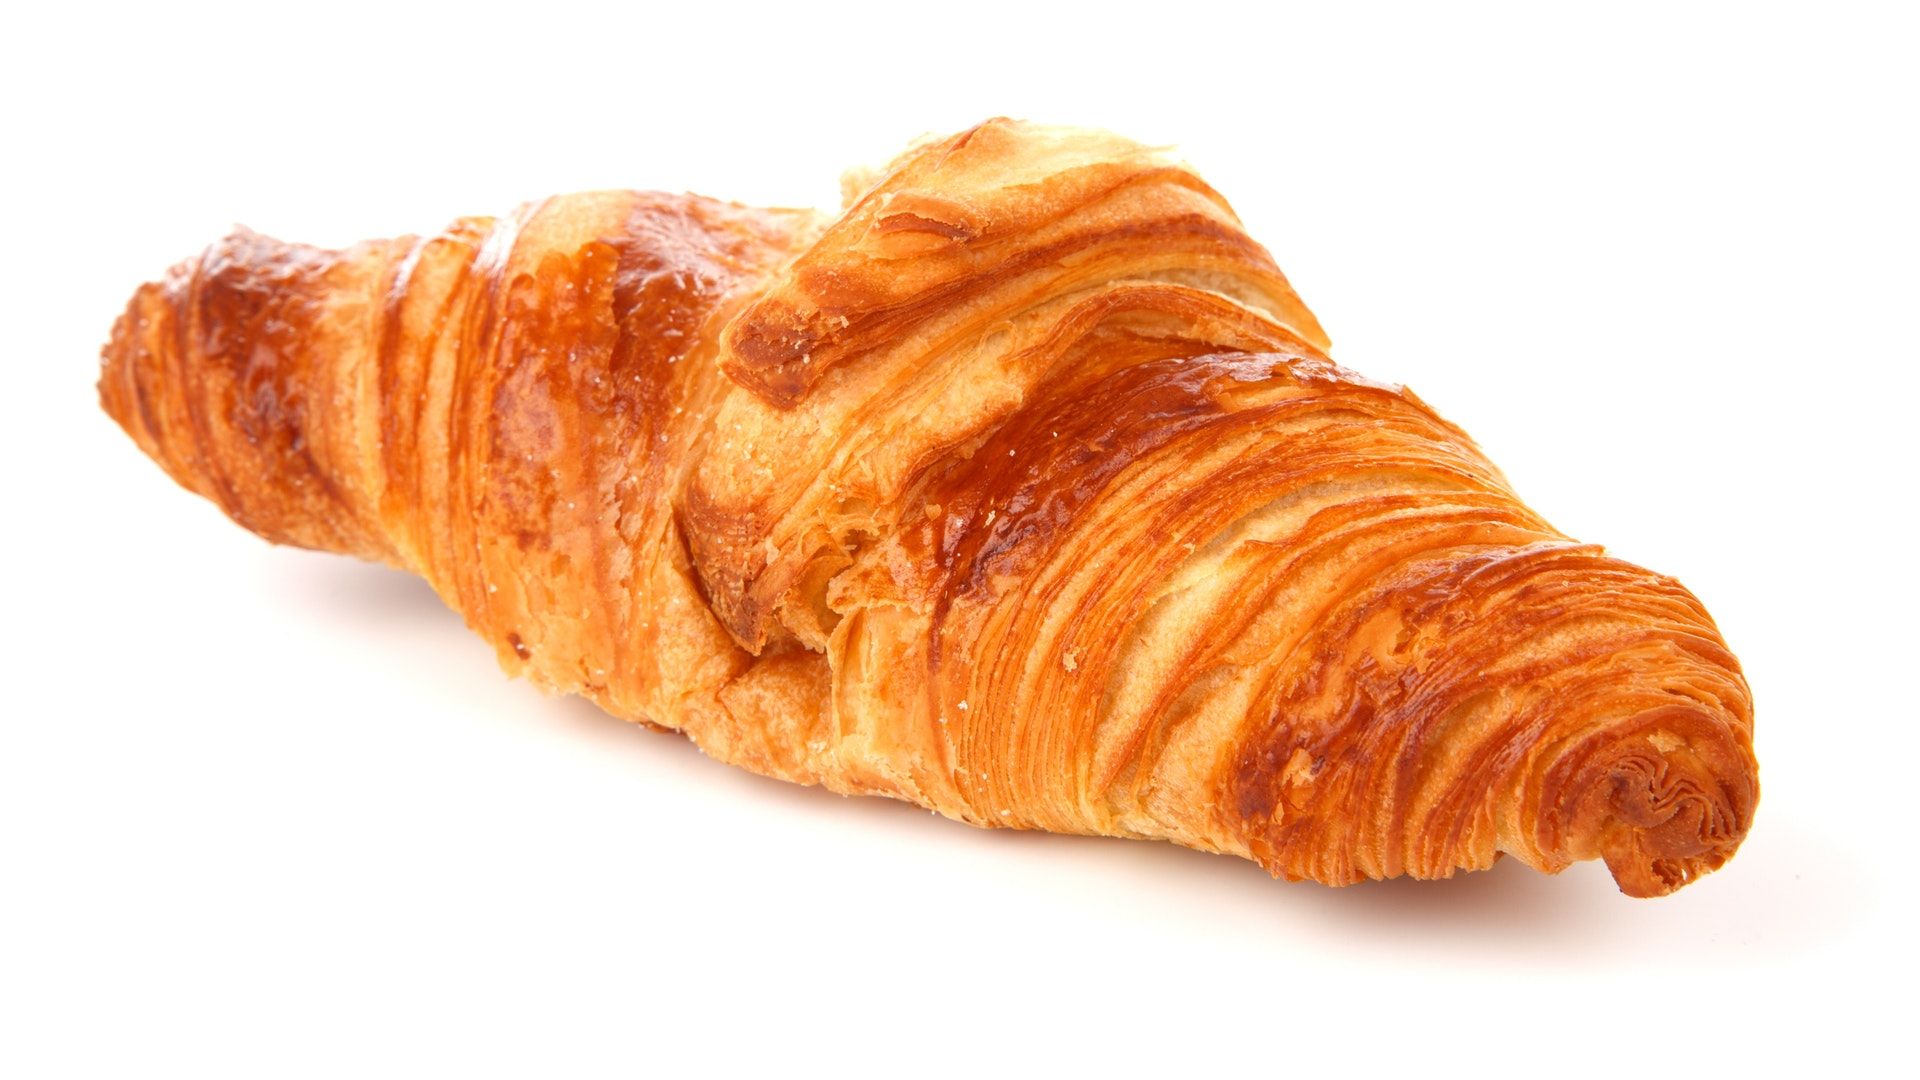 Lucy's Cakes & Crumbs - Croissant